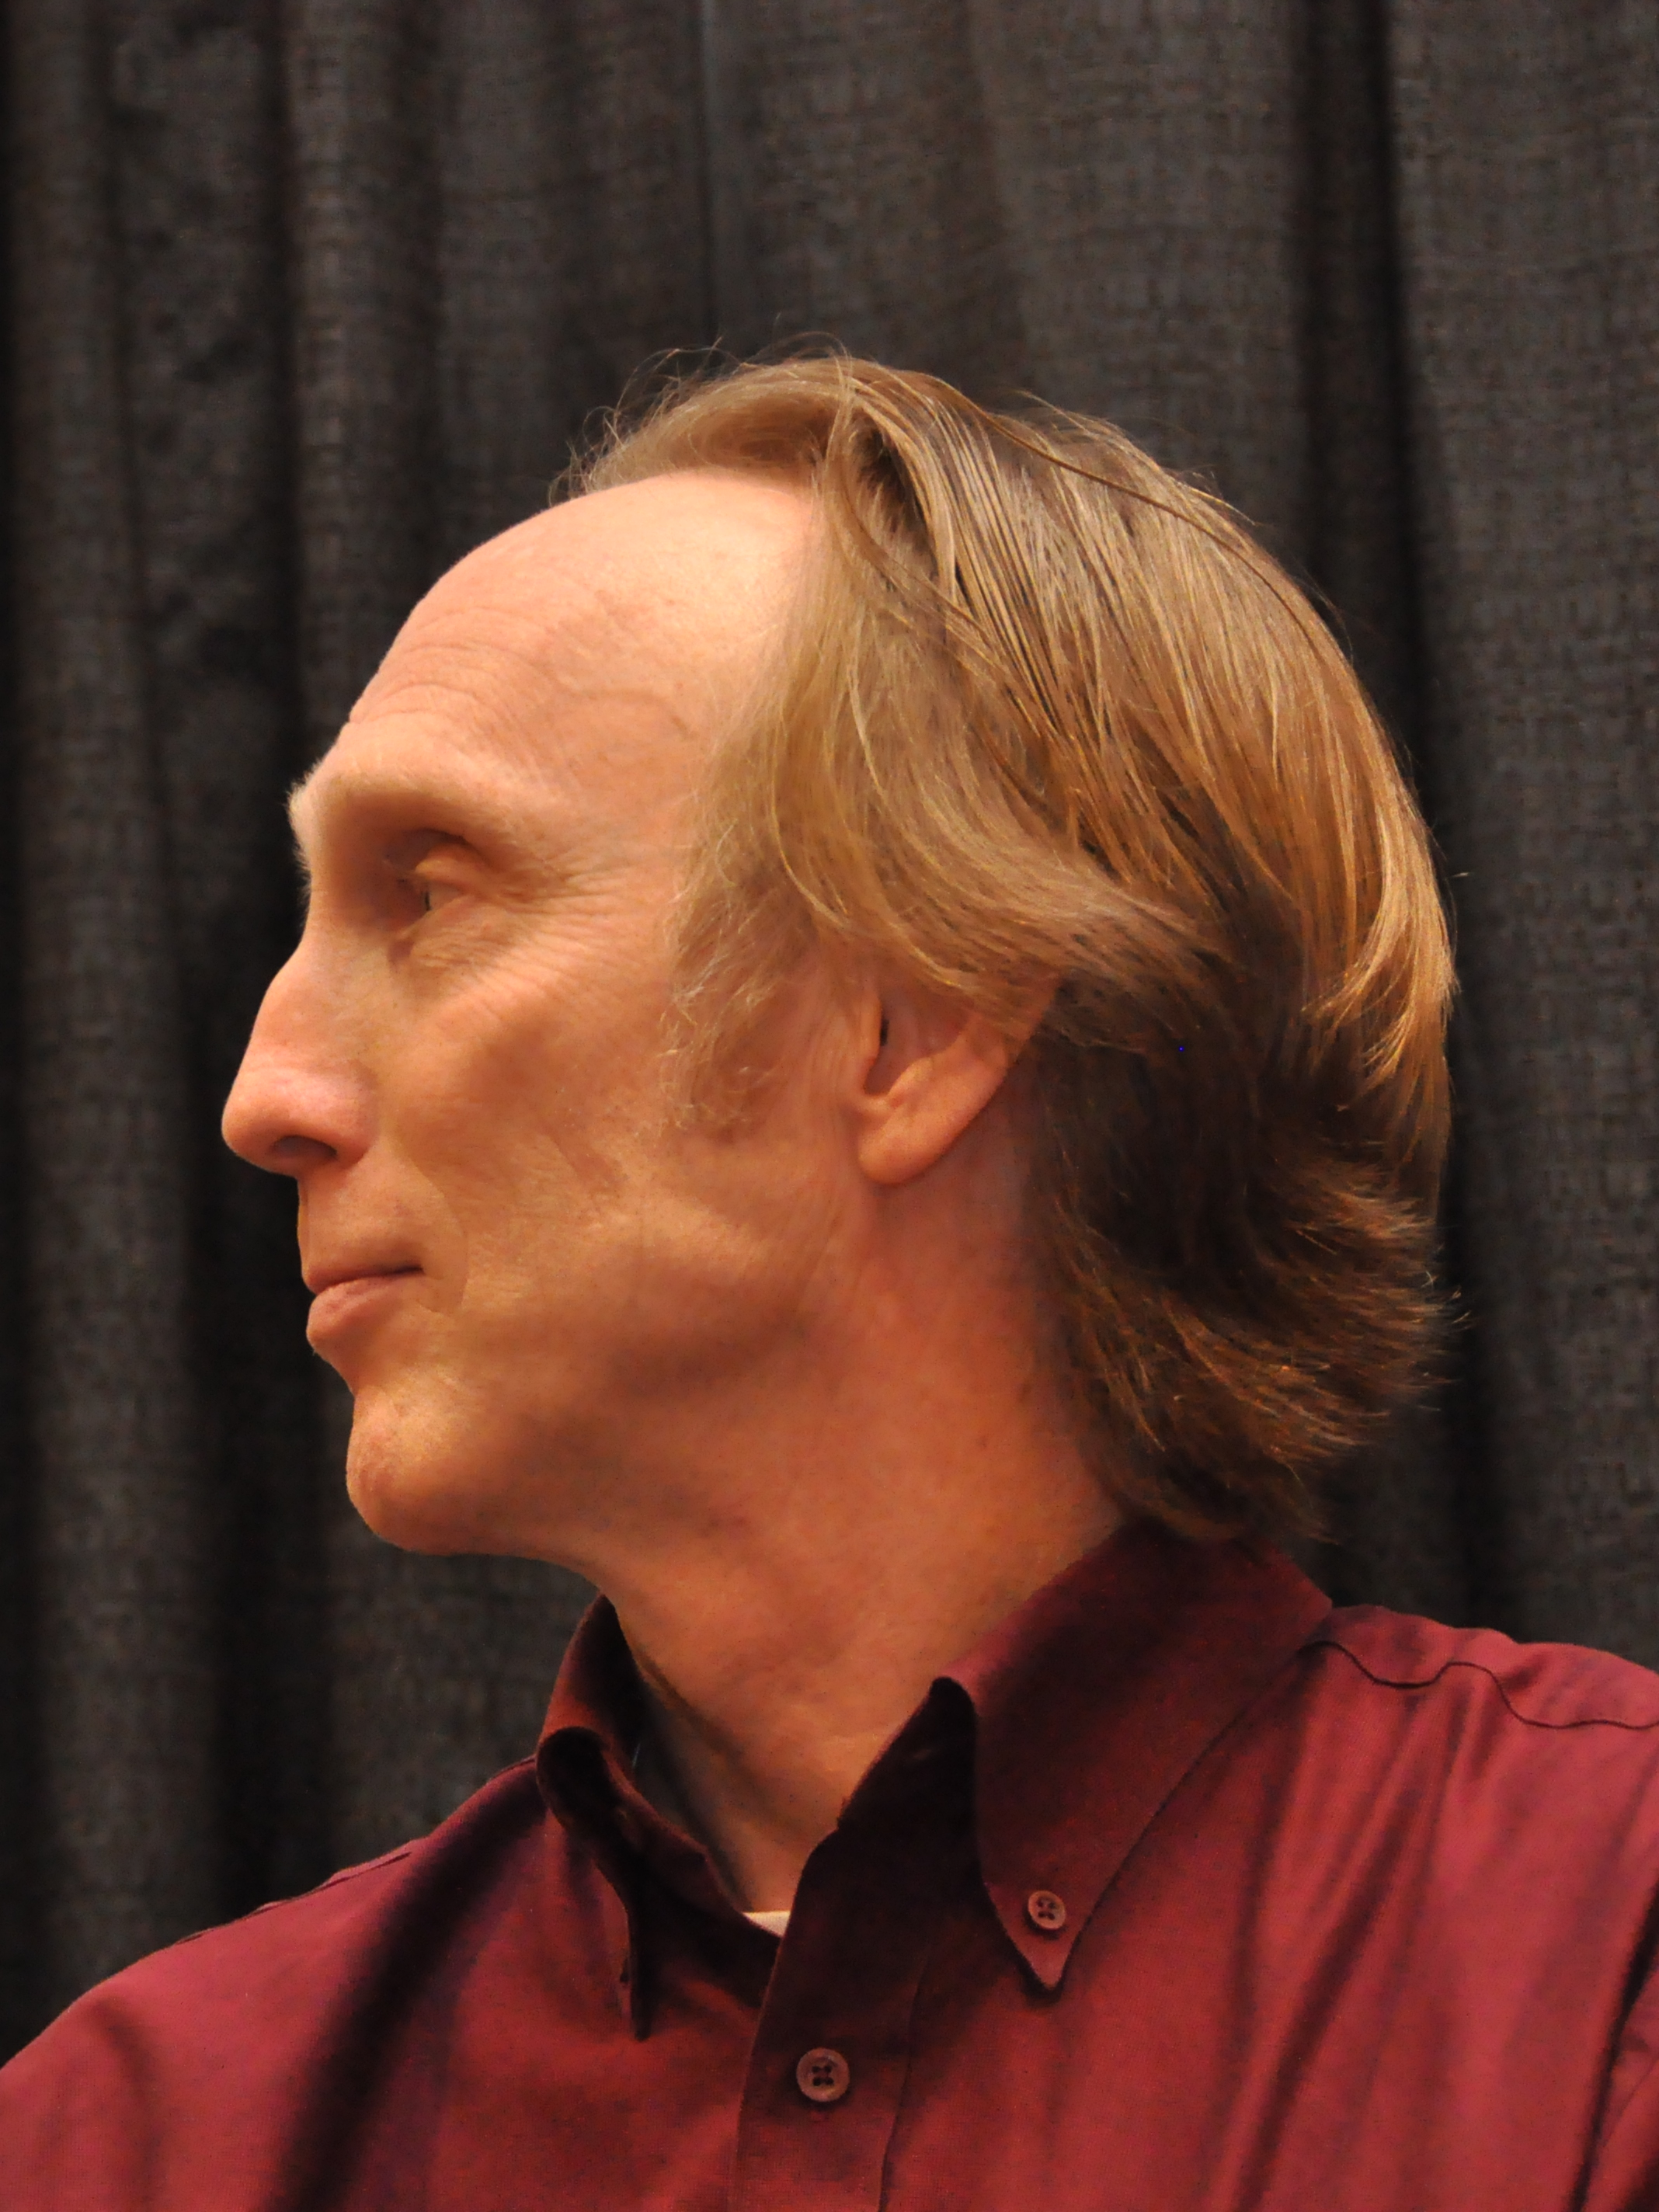 Selick on a panel at South by Southwest in March 2009